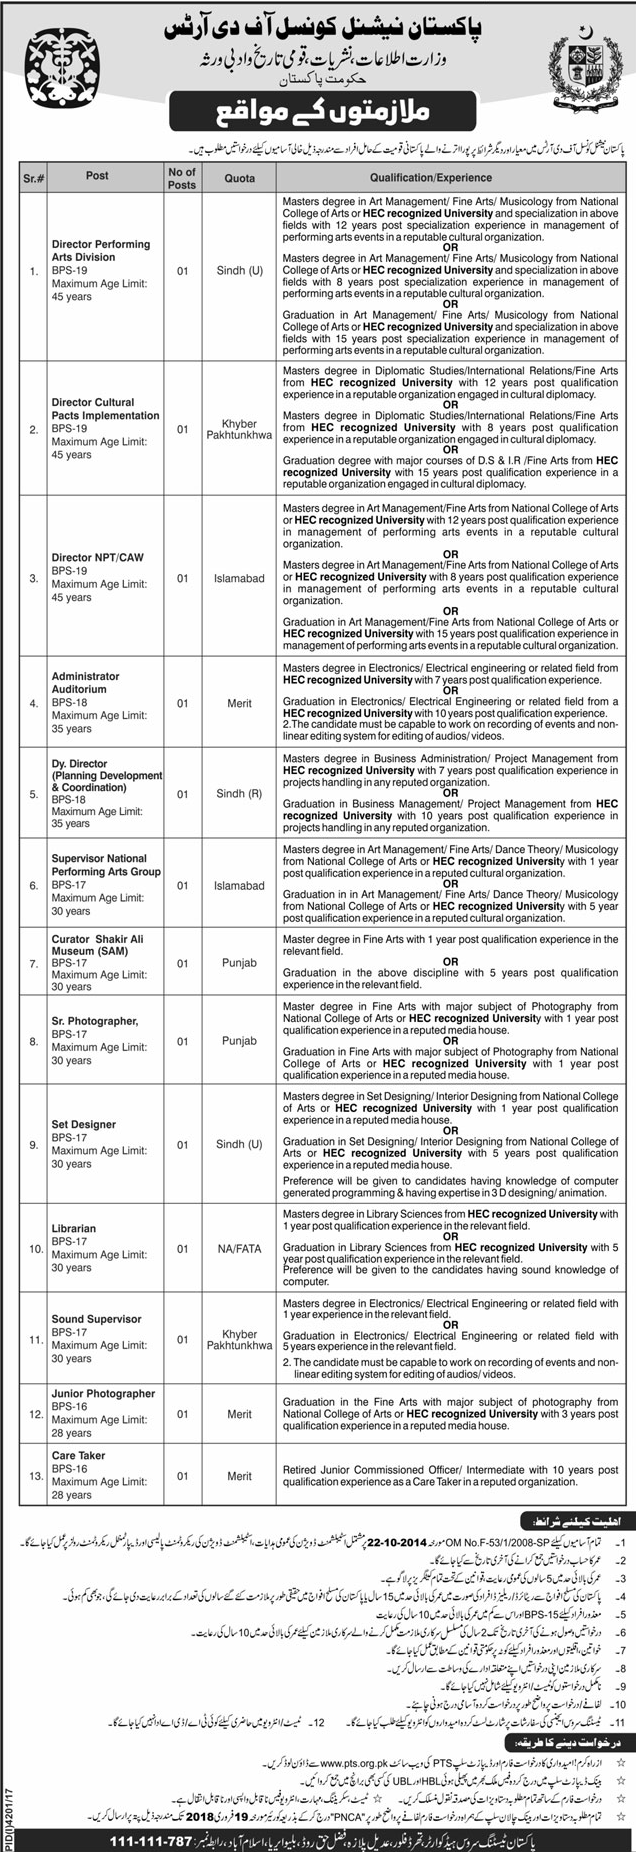 Pakistan National Council of the Arts Jobs Open